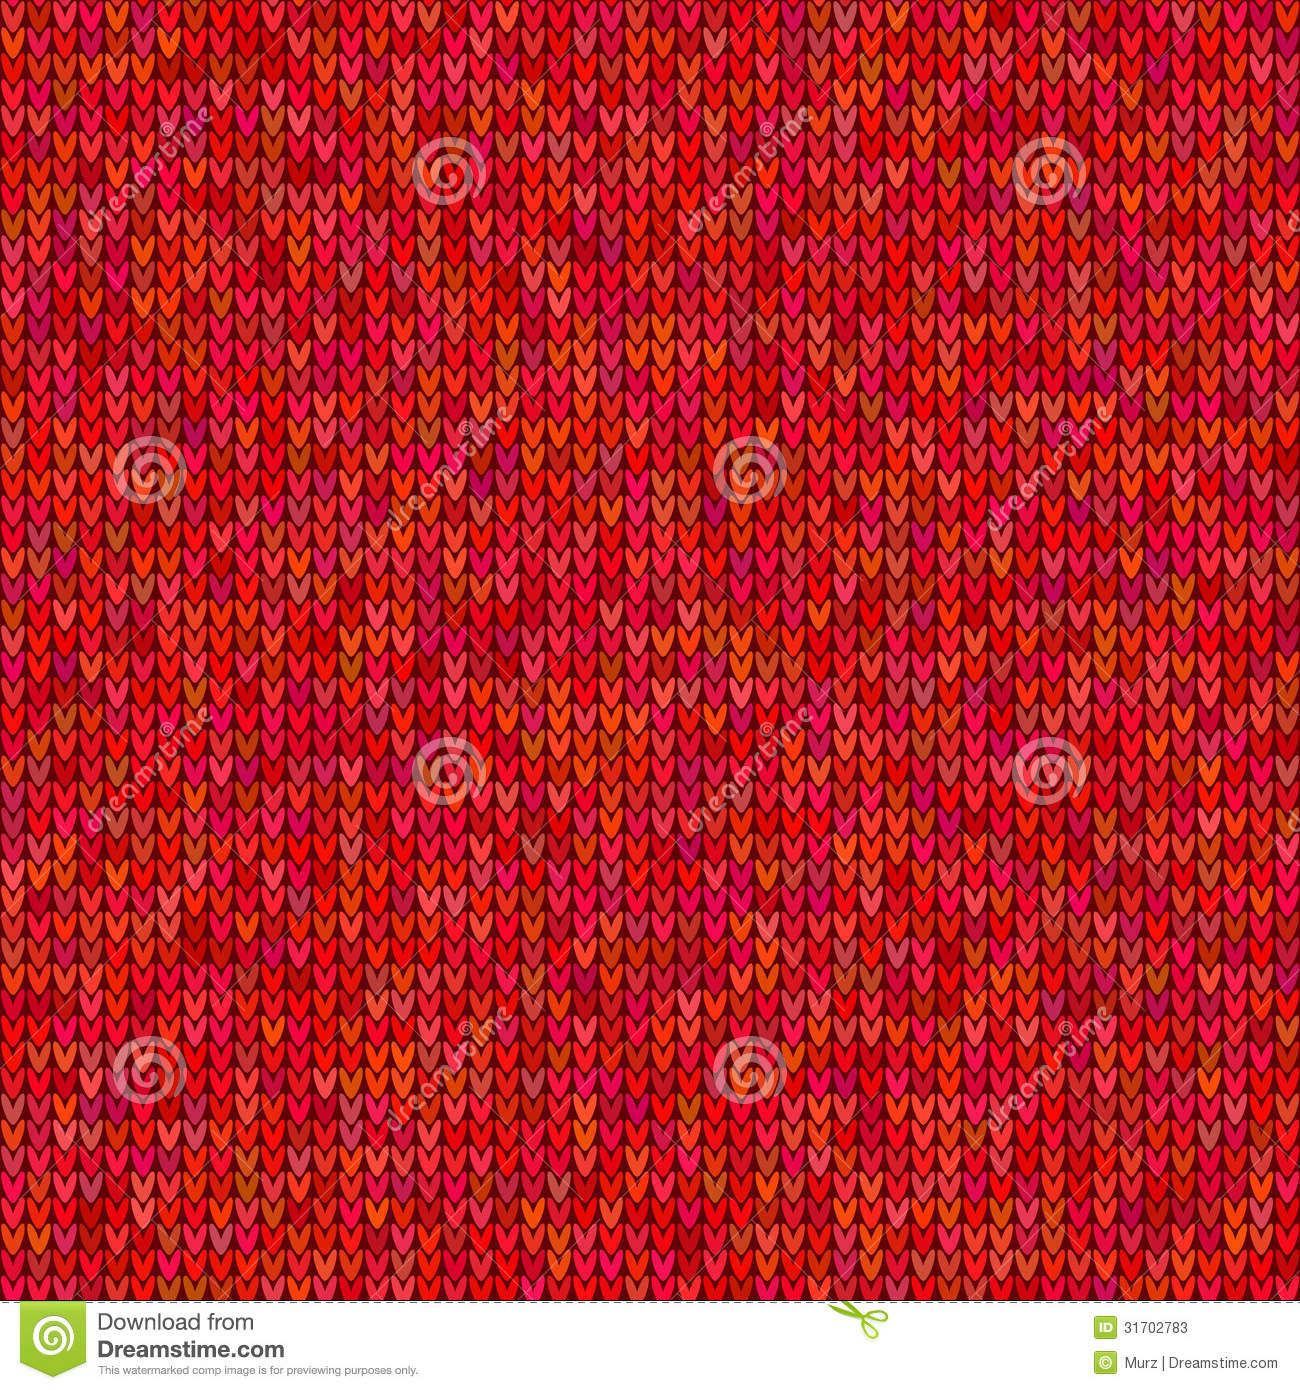 Red Knitted Sweater Pattern Stock Photos - Image: 31702783